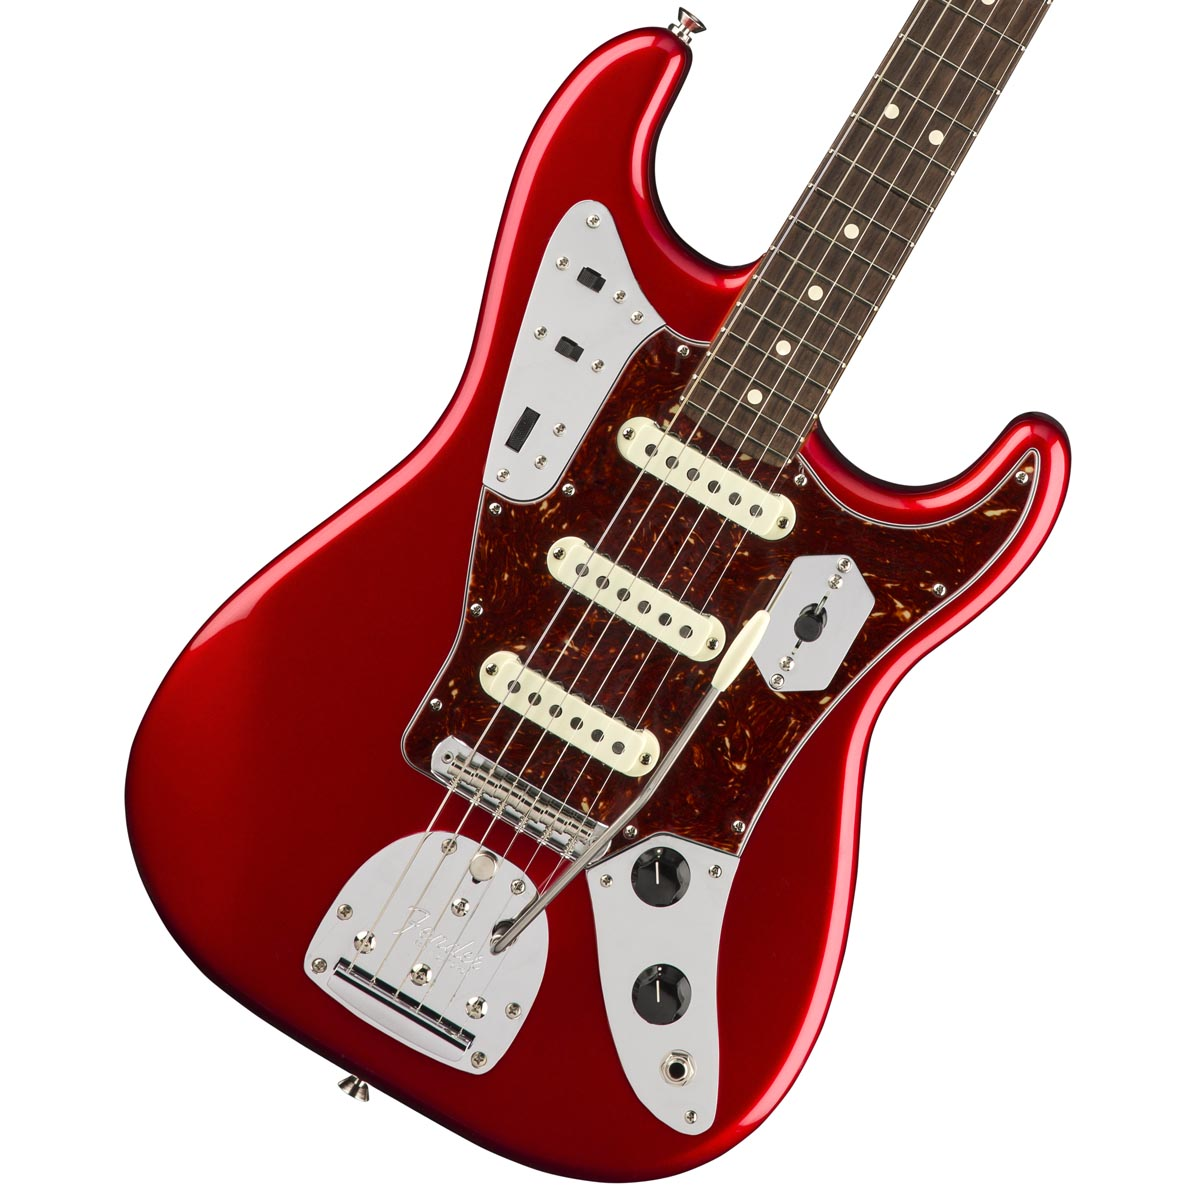 Fender USA / Parallel Universe Limited Edition Jaguar Strat Candy Apple Red フェンダー【新宿店】